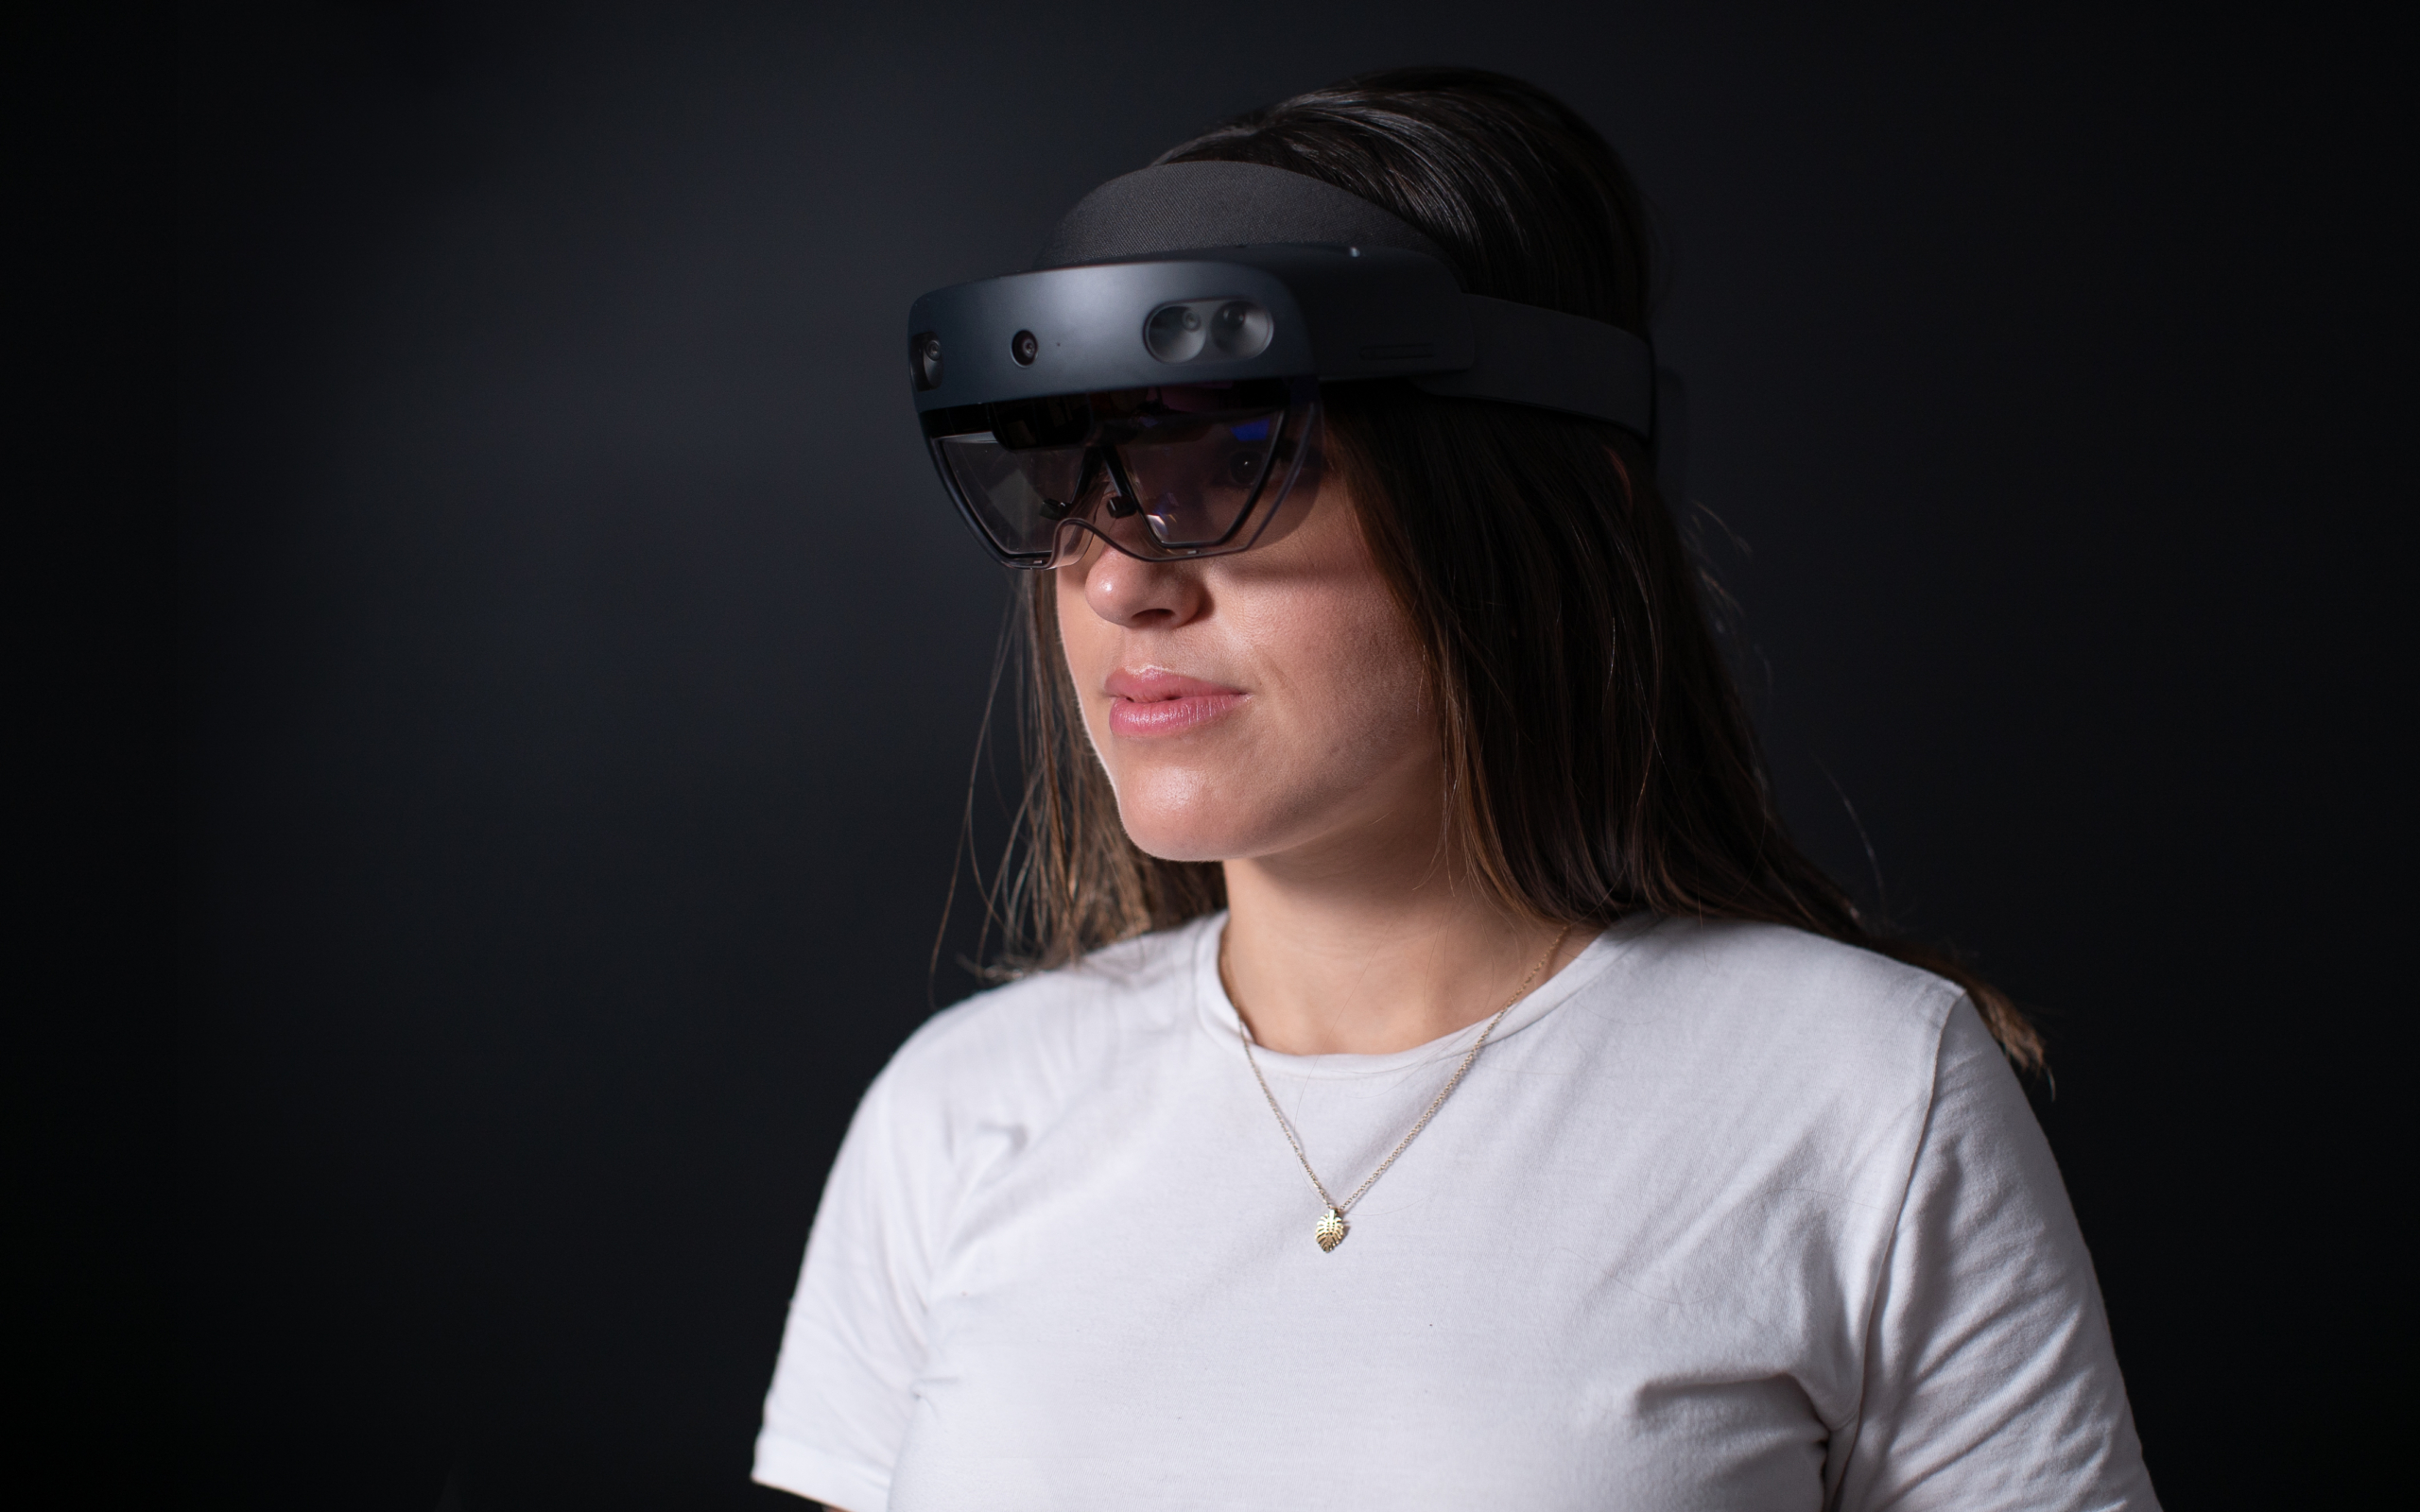 A picture of Melissa wearing a Microsoft HoloLens